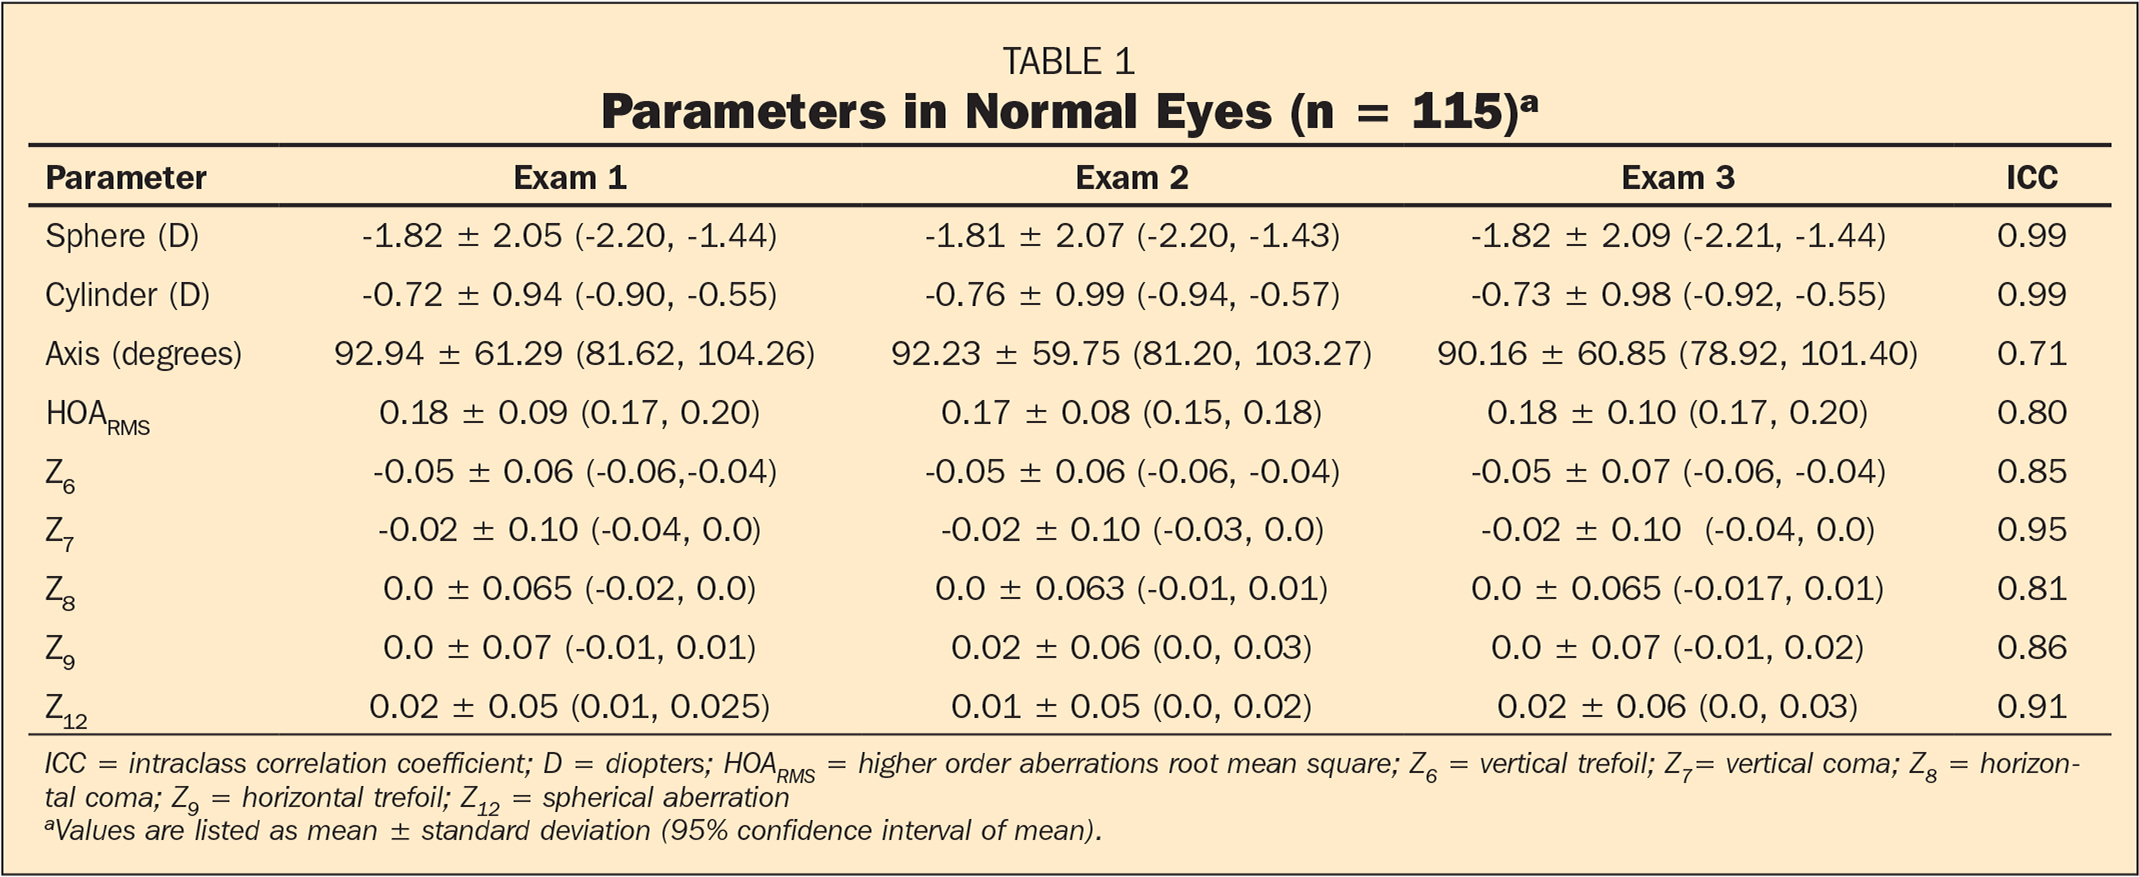 Parameters in Normal Eyes (n = 115)a